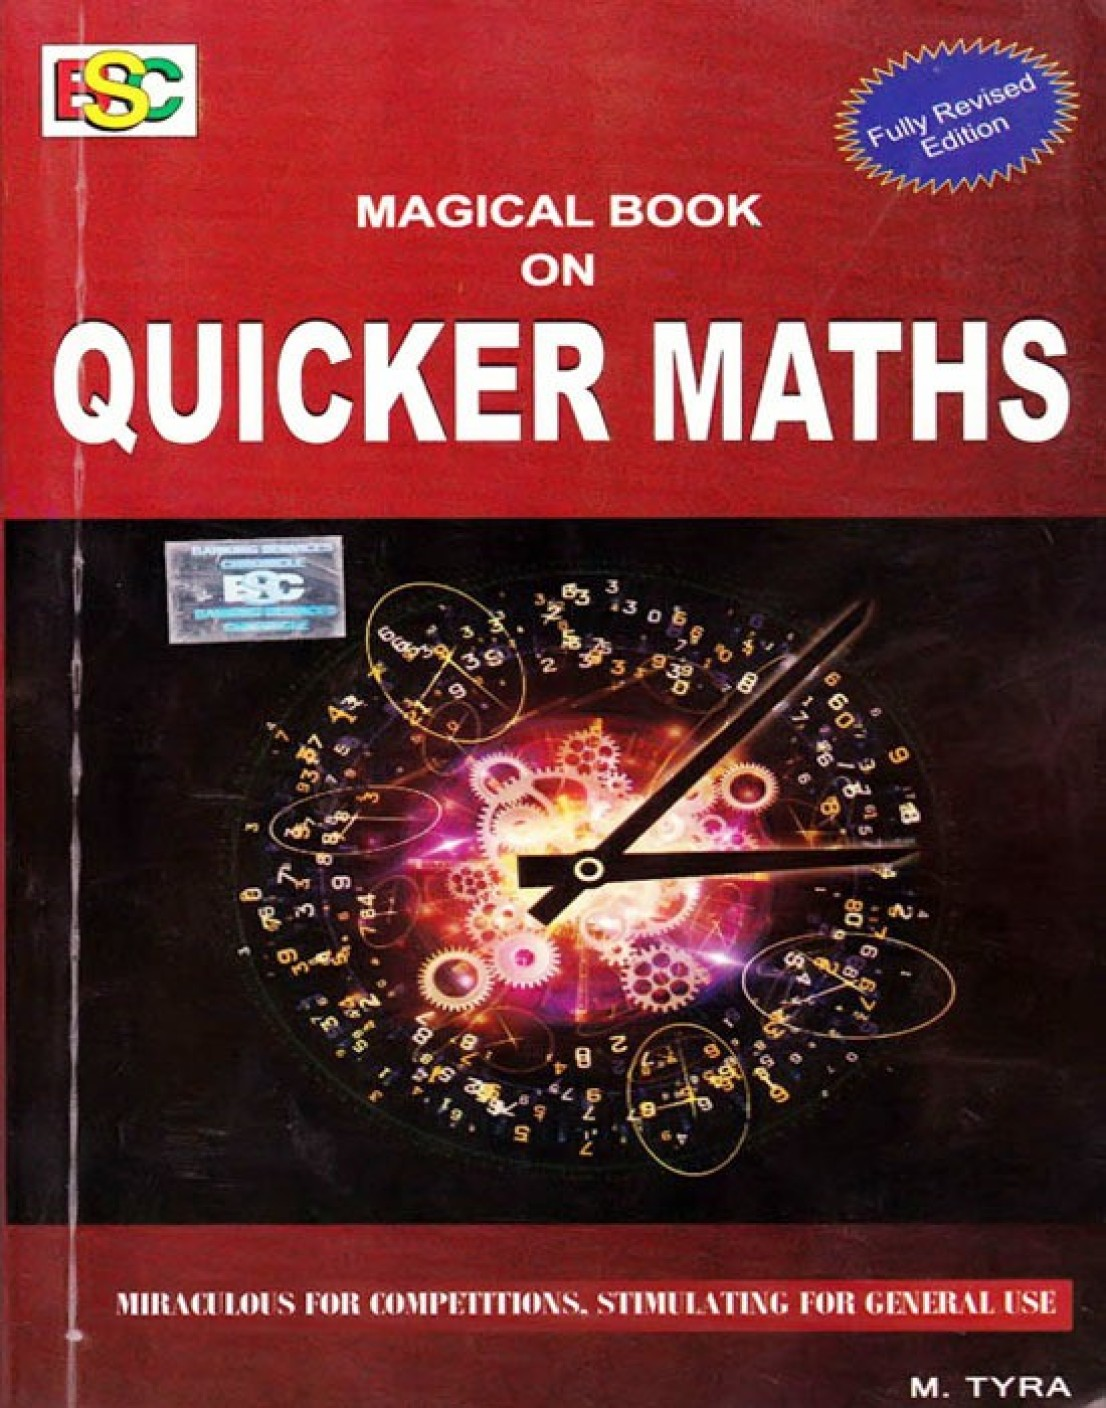 pdf magical book on